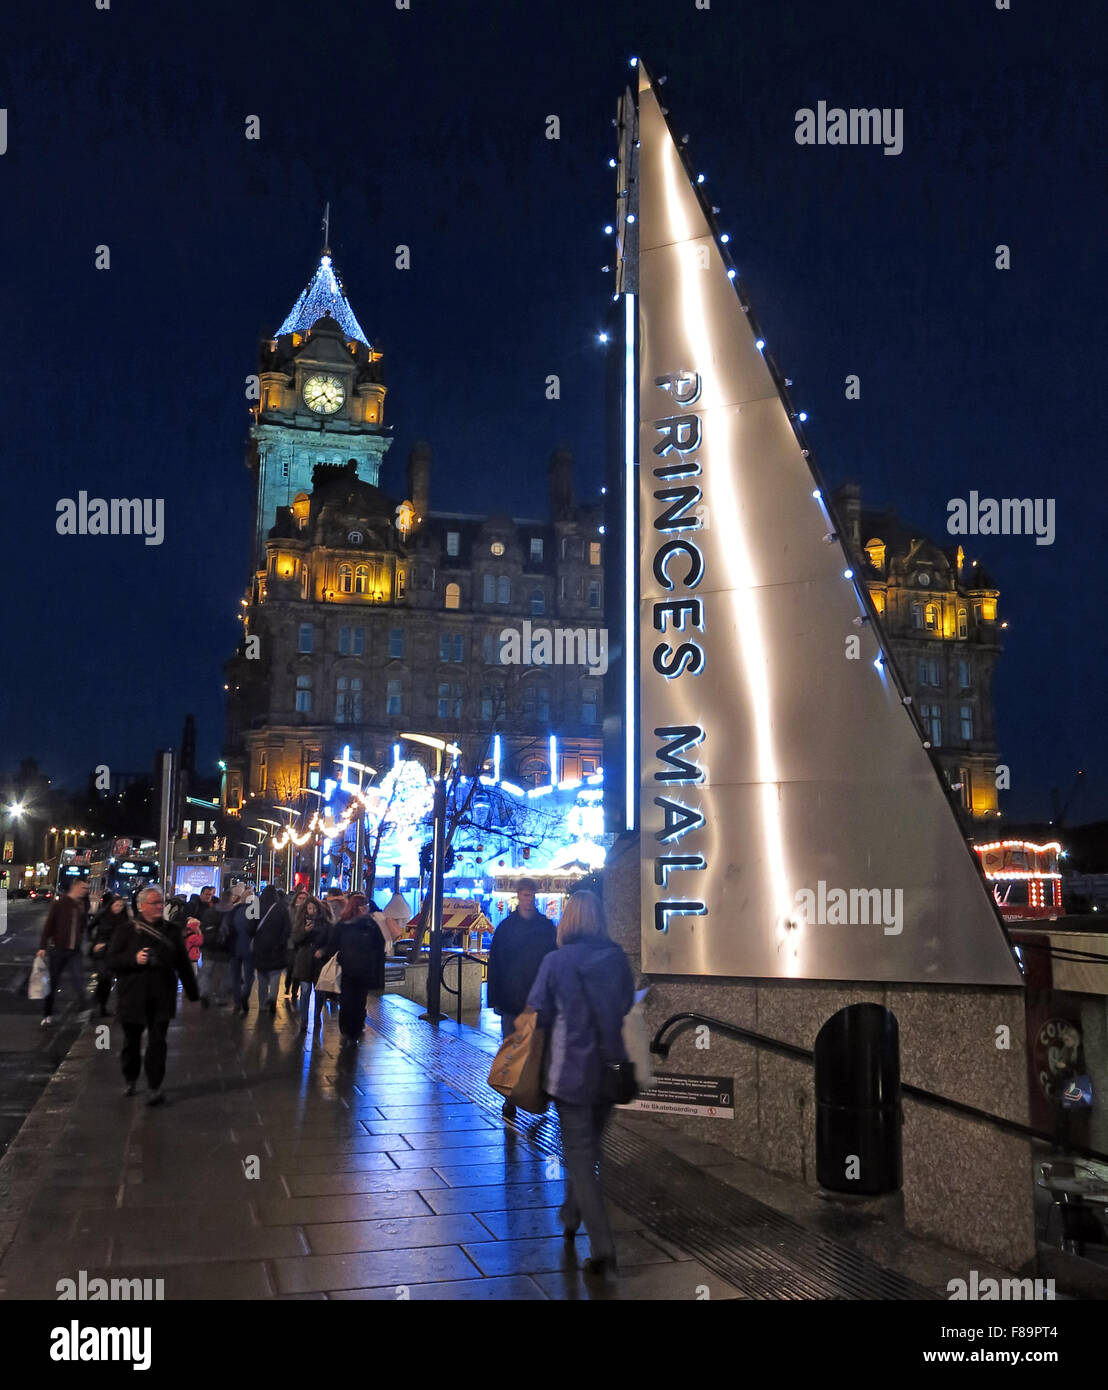 GB,Great,Britain,Night,time,nighttime,dusk,slide,hotel,Balmoral,Hotel,Clock,street,Mall,Princes Mall,Shopping,Xmas,Festive,Hogmanay,tourist,travel,lit,low,light,Helter,Skelter,winter,fun,entertainment,Scottish,Scotland,UK,Lothian,Lothians,Midlothian,New Year,Low light,Helter Skelter,GoTonySmith,pavement,walkway,walk,way,reflection,blue,Buy Pictures of,Buy Images Of,Princes Mall